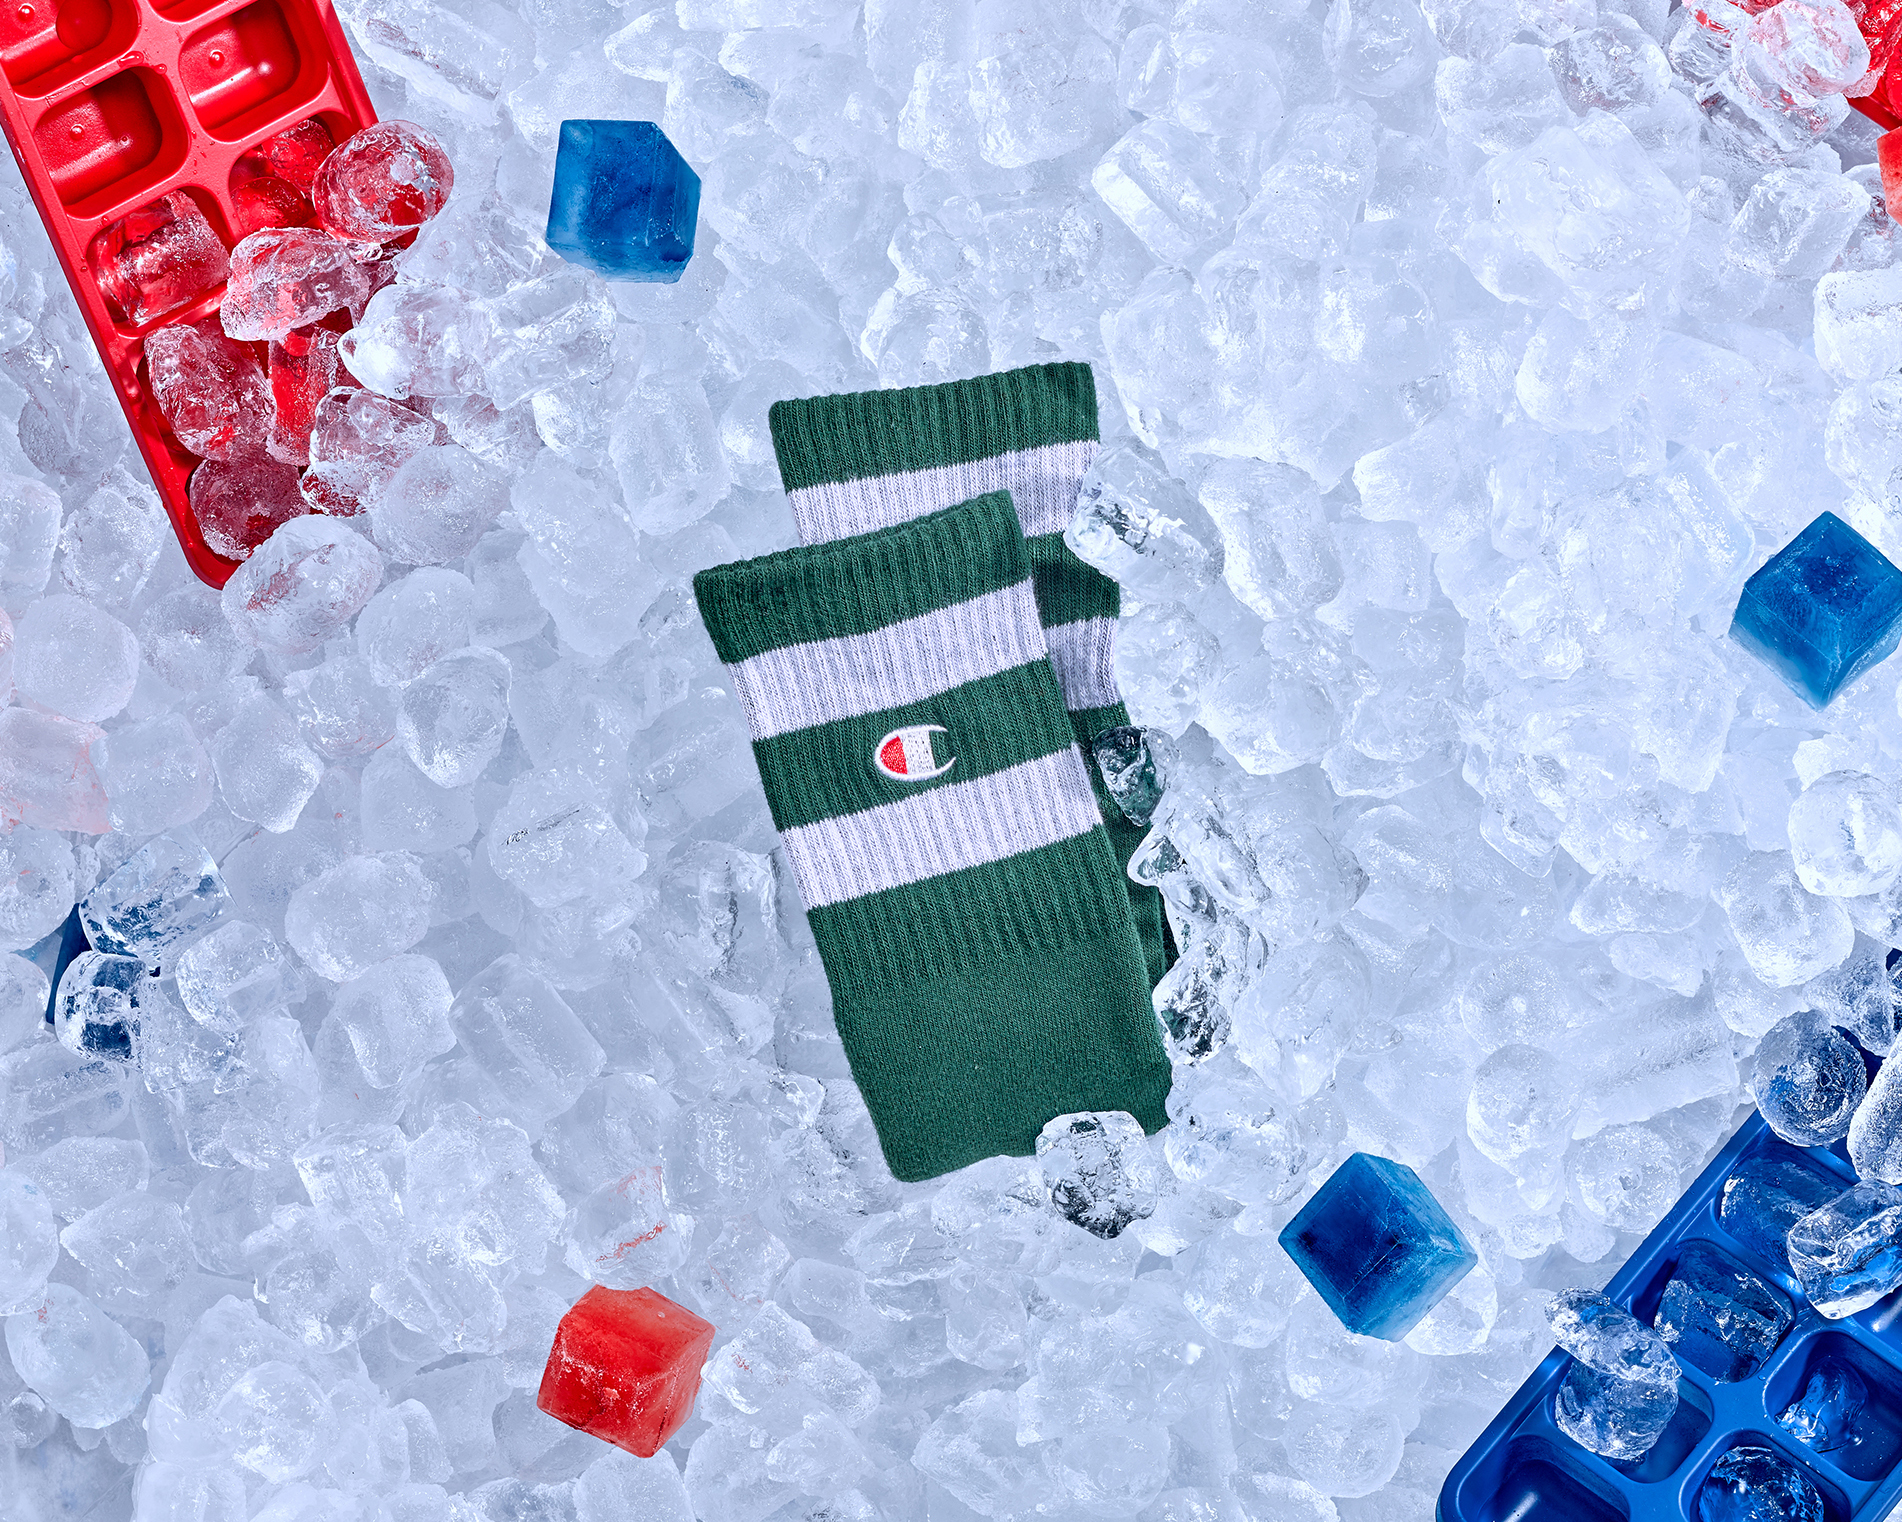 mens fashion accessories green stripy socks surrounded by ice, shot in a creative product packshot style created in london studios by chris howlett